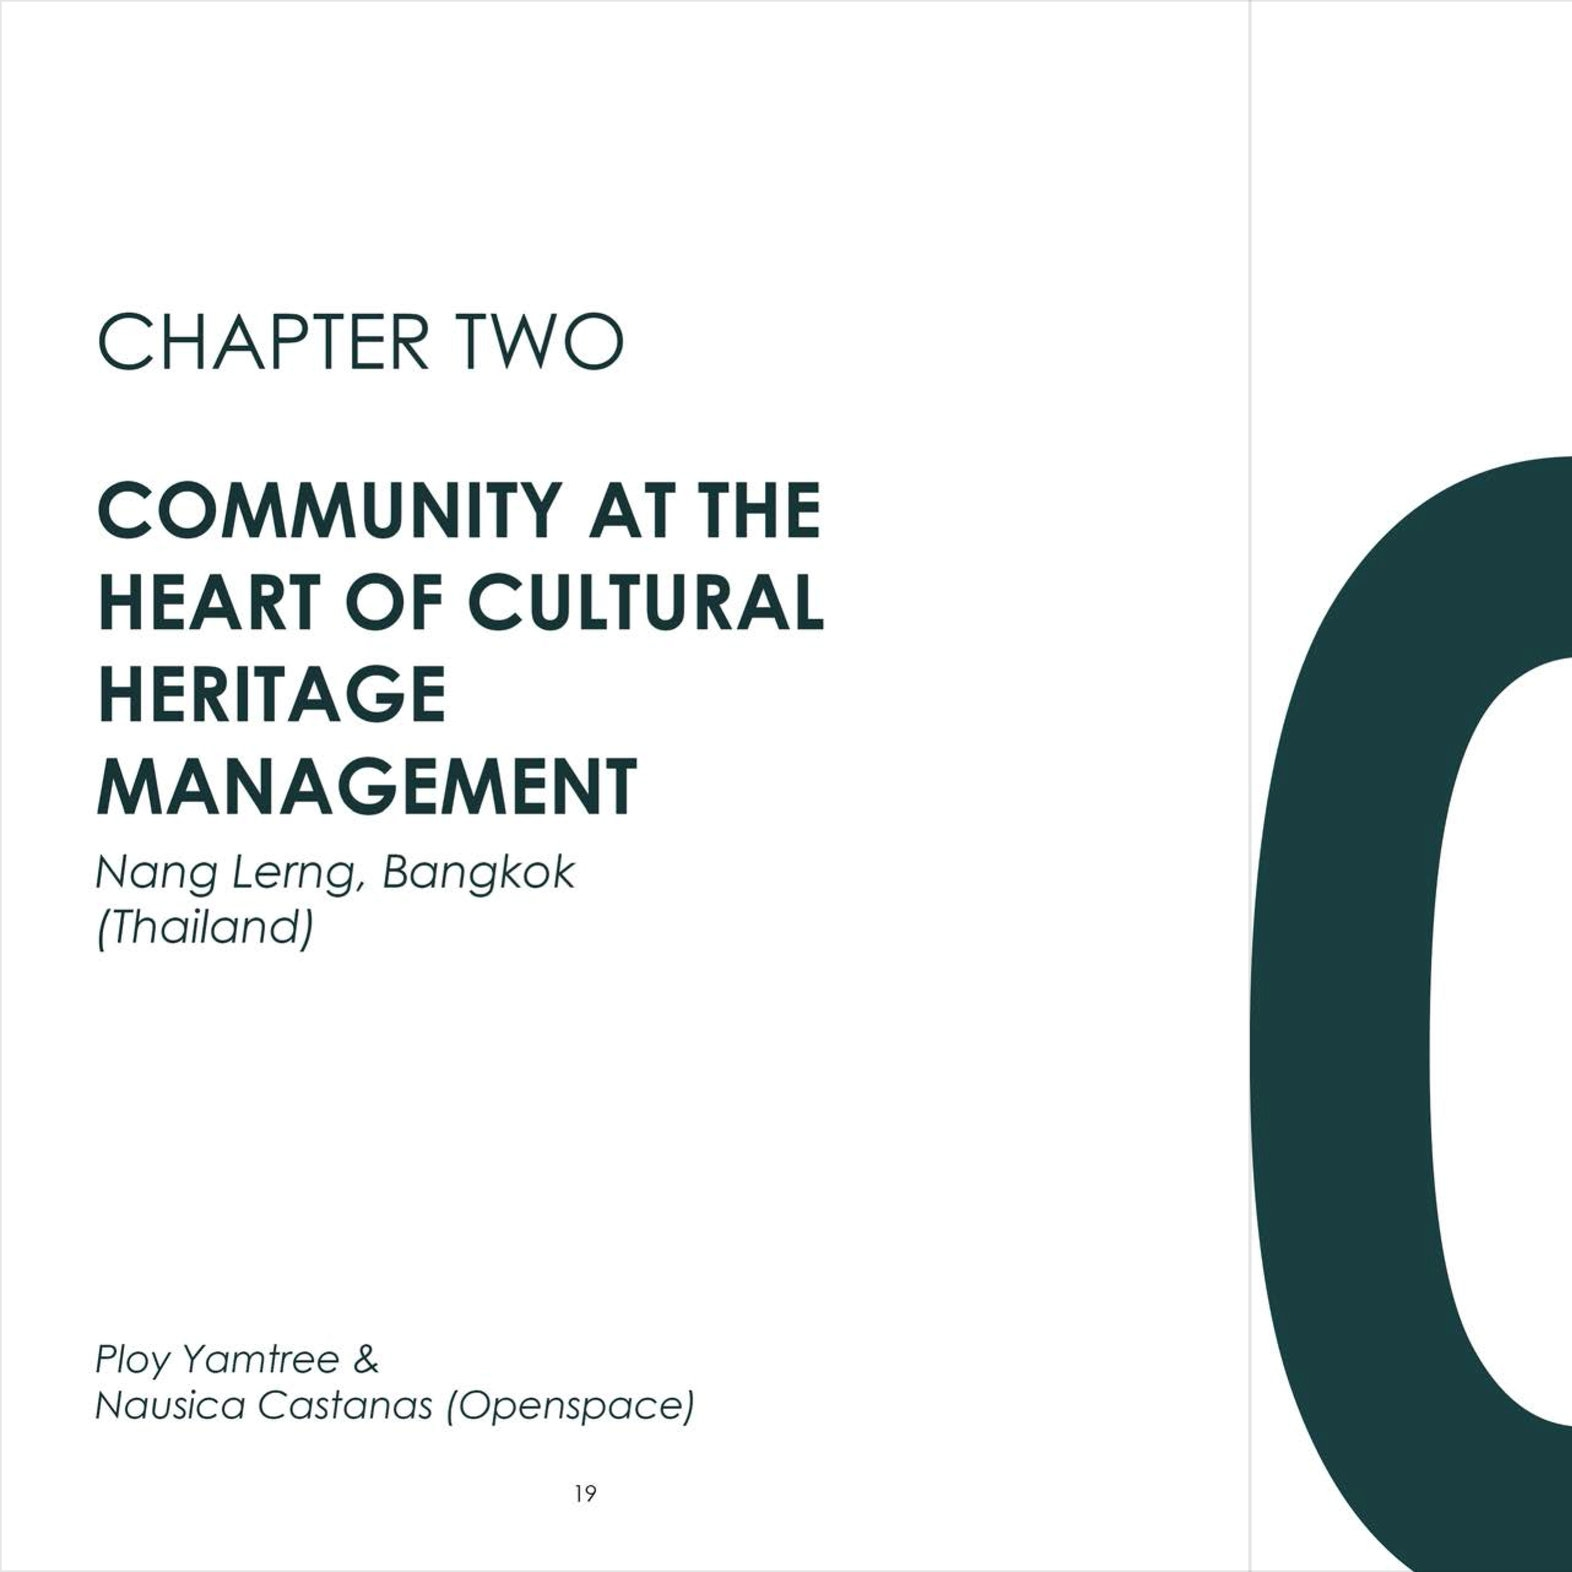 Openspace and CAN: Community at the heart of cultural heritage management in Community at the Heart of Cultural Heritage Management in Community Voices: Preserving the Local Heritage